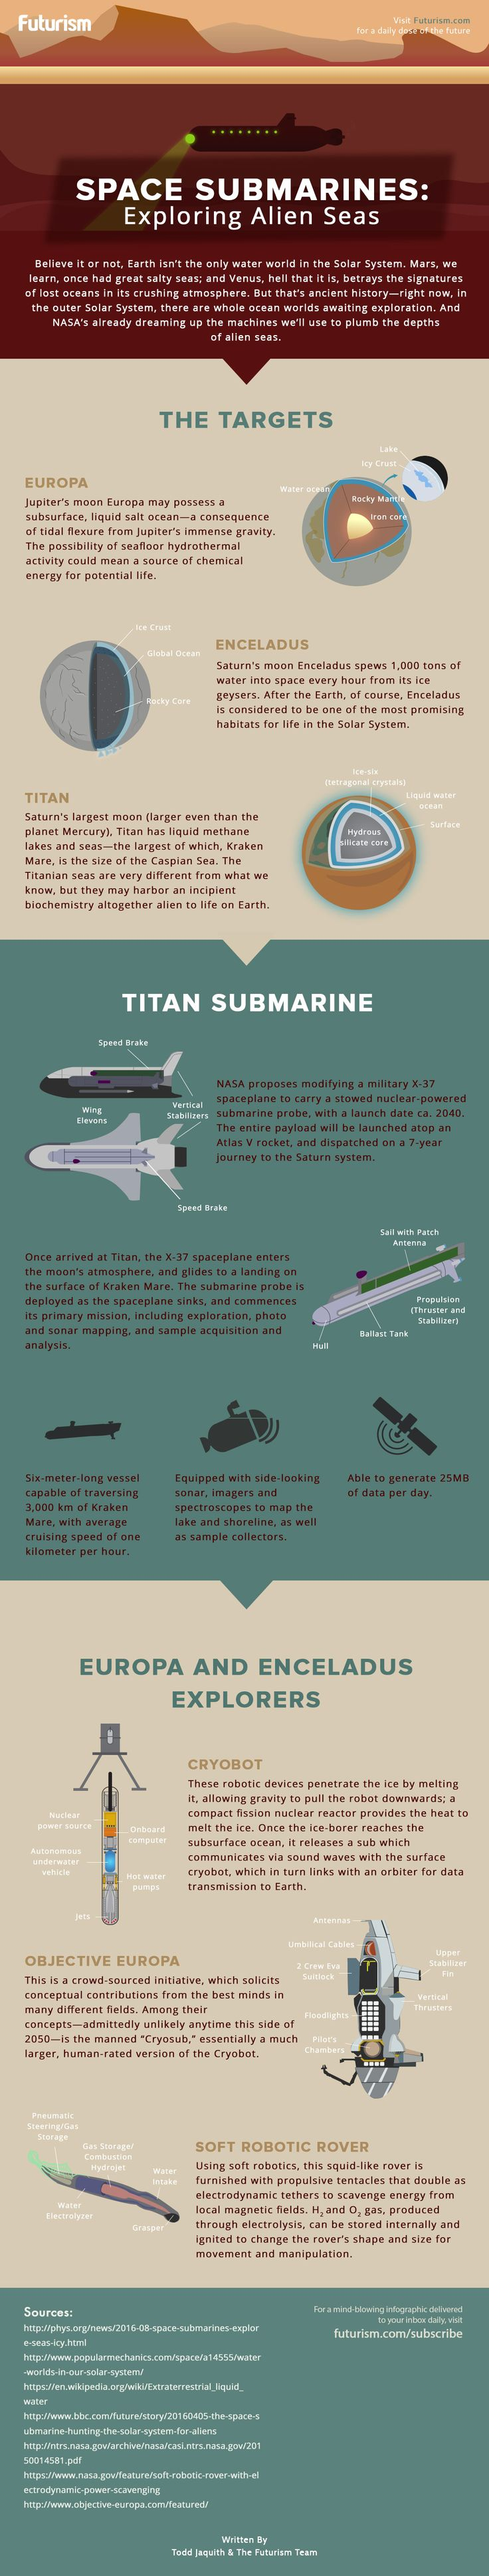 Move over Cousteau—NASA's muscling into the ocean exploration game.   Here's a look at the space subs we'll use to explore our Solar System's alien seas.  http://futurism.com/images/space-submarines-exploring-alien-seas-infographic/?utm_campaign=coschedule&utm_source=pinterest&utm_medium=Futurism&utm_content=Space%20Submarines%3A%20Exploring%20Alien%20Seas%20%5BINFOGRAPHIC%5D